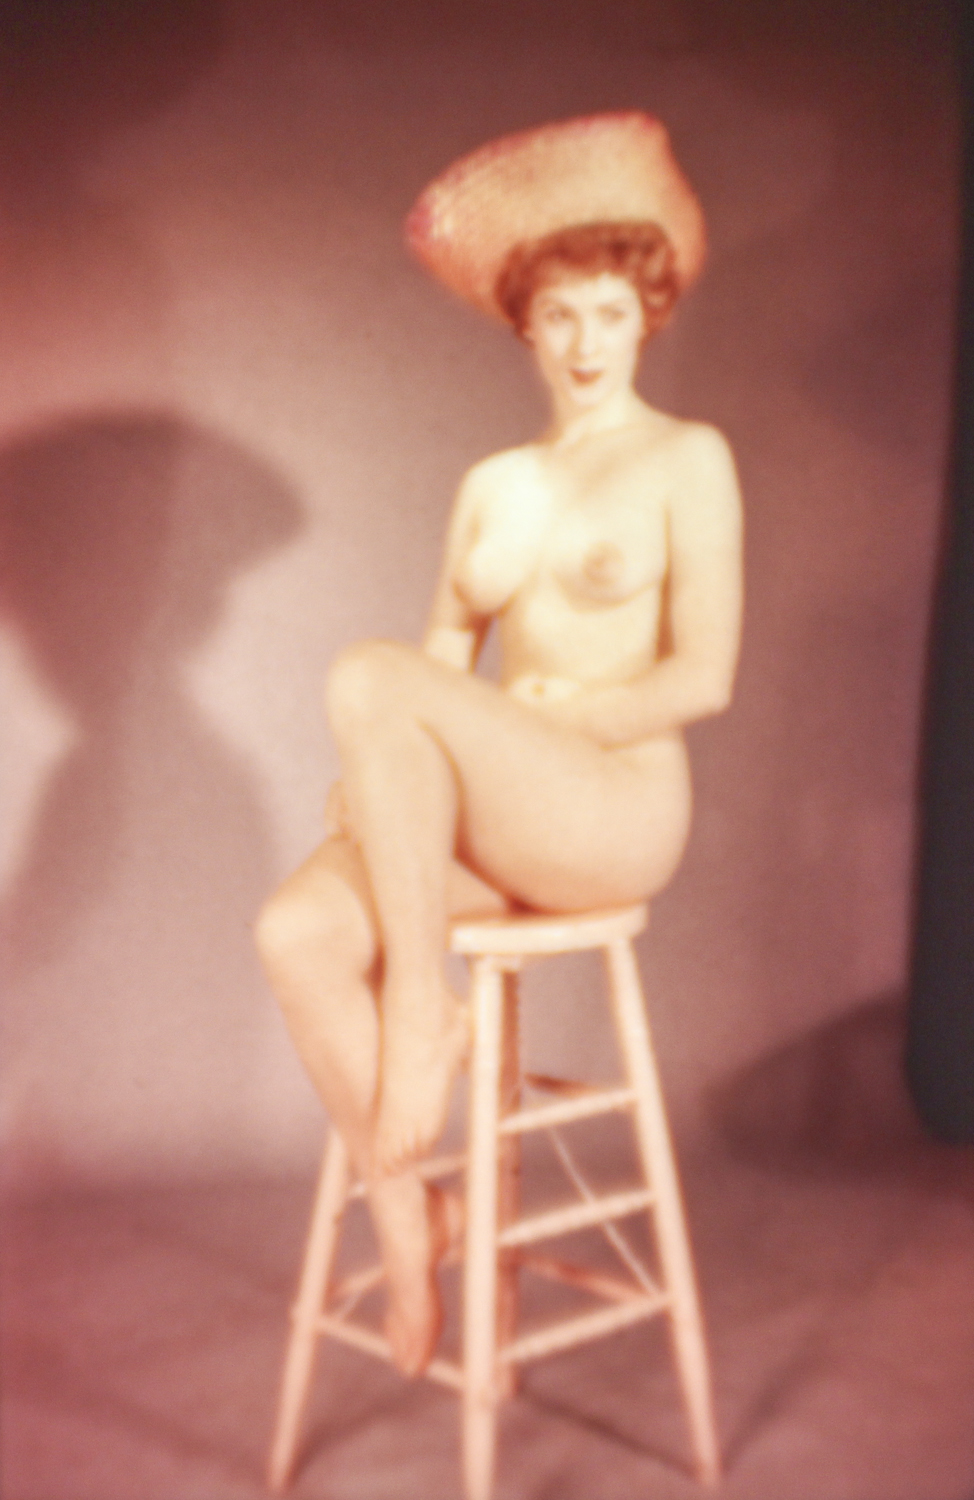 Woman on Stool.jpg